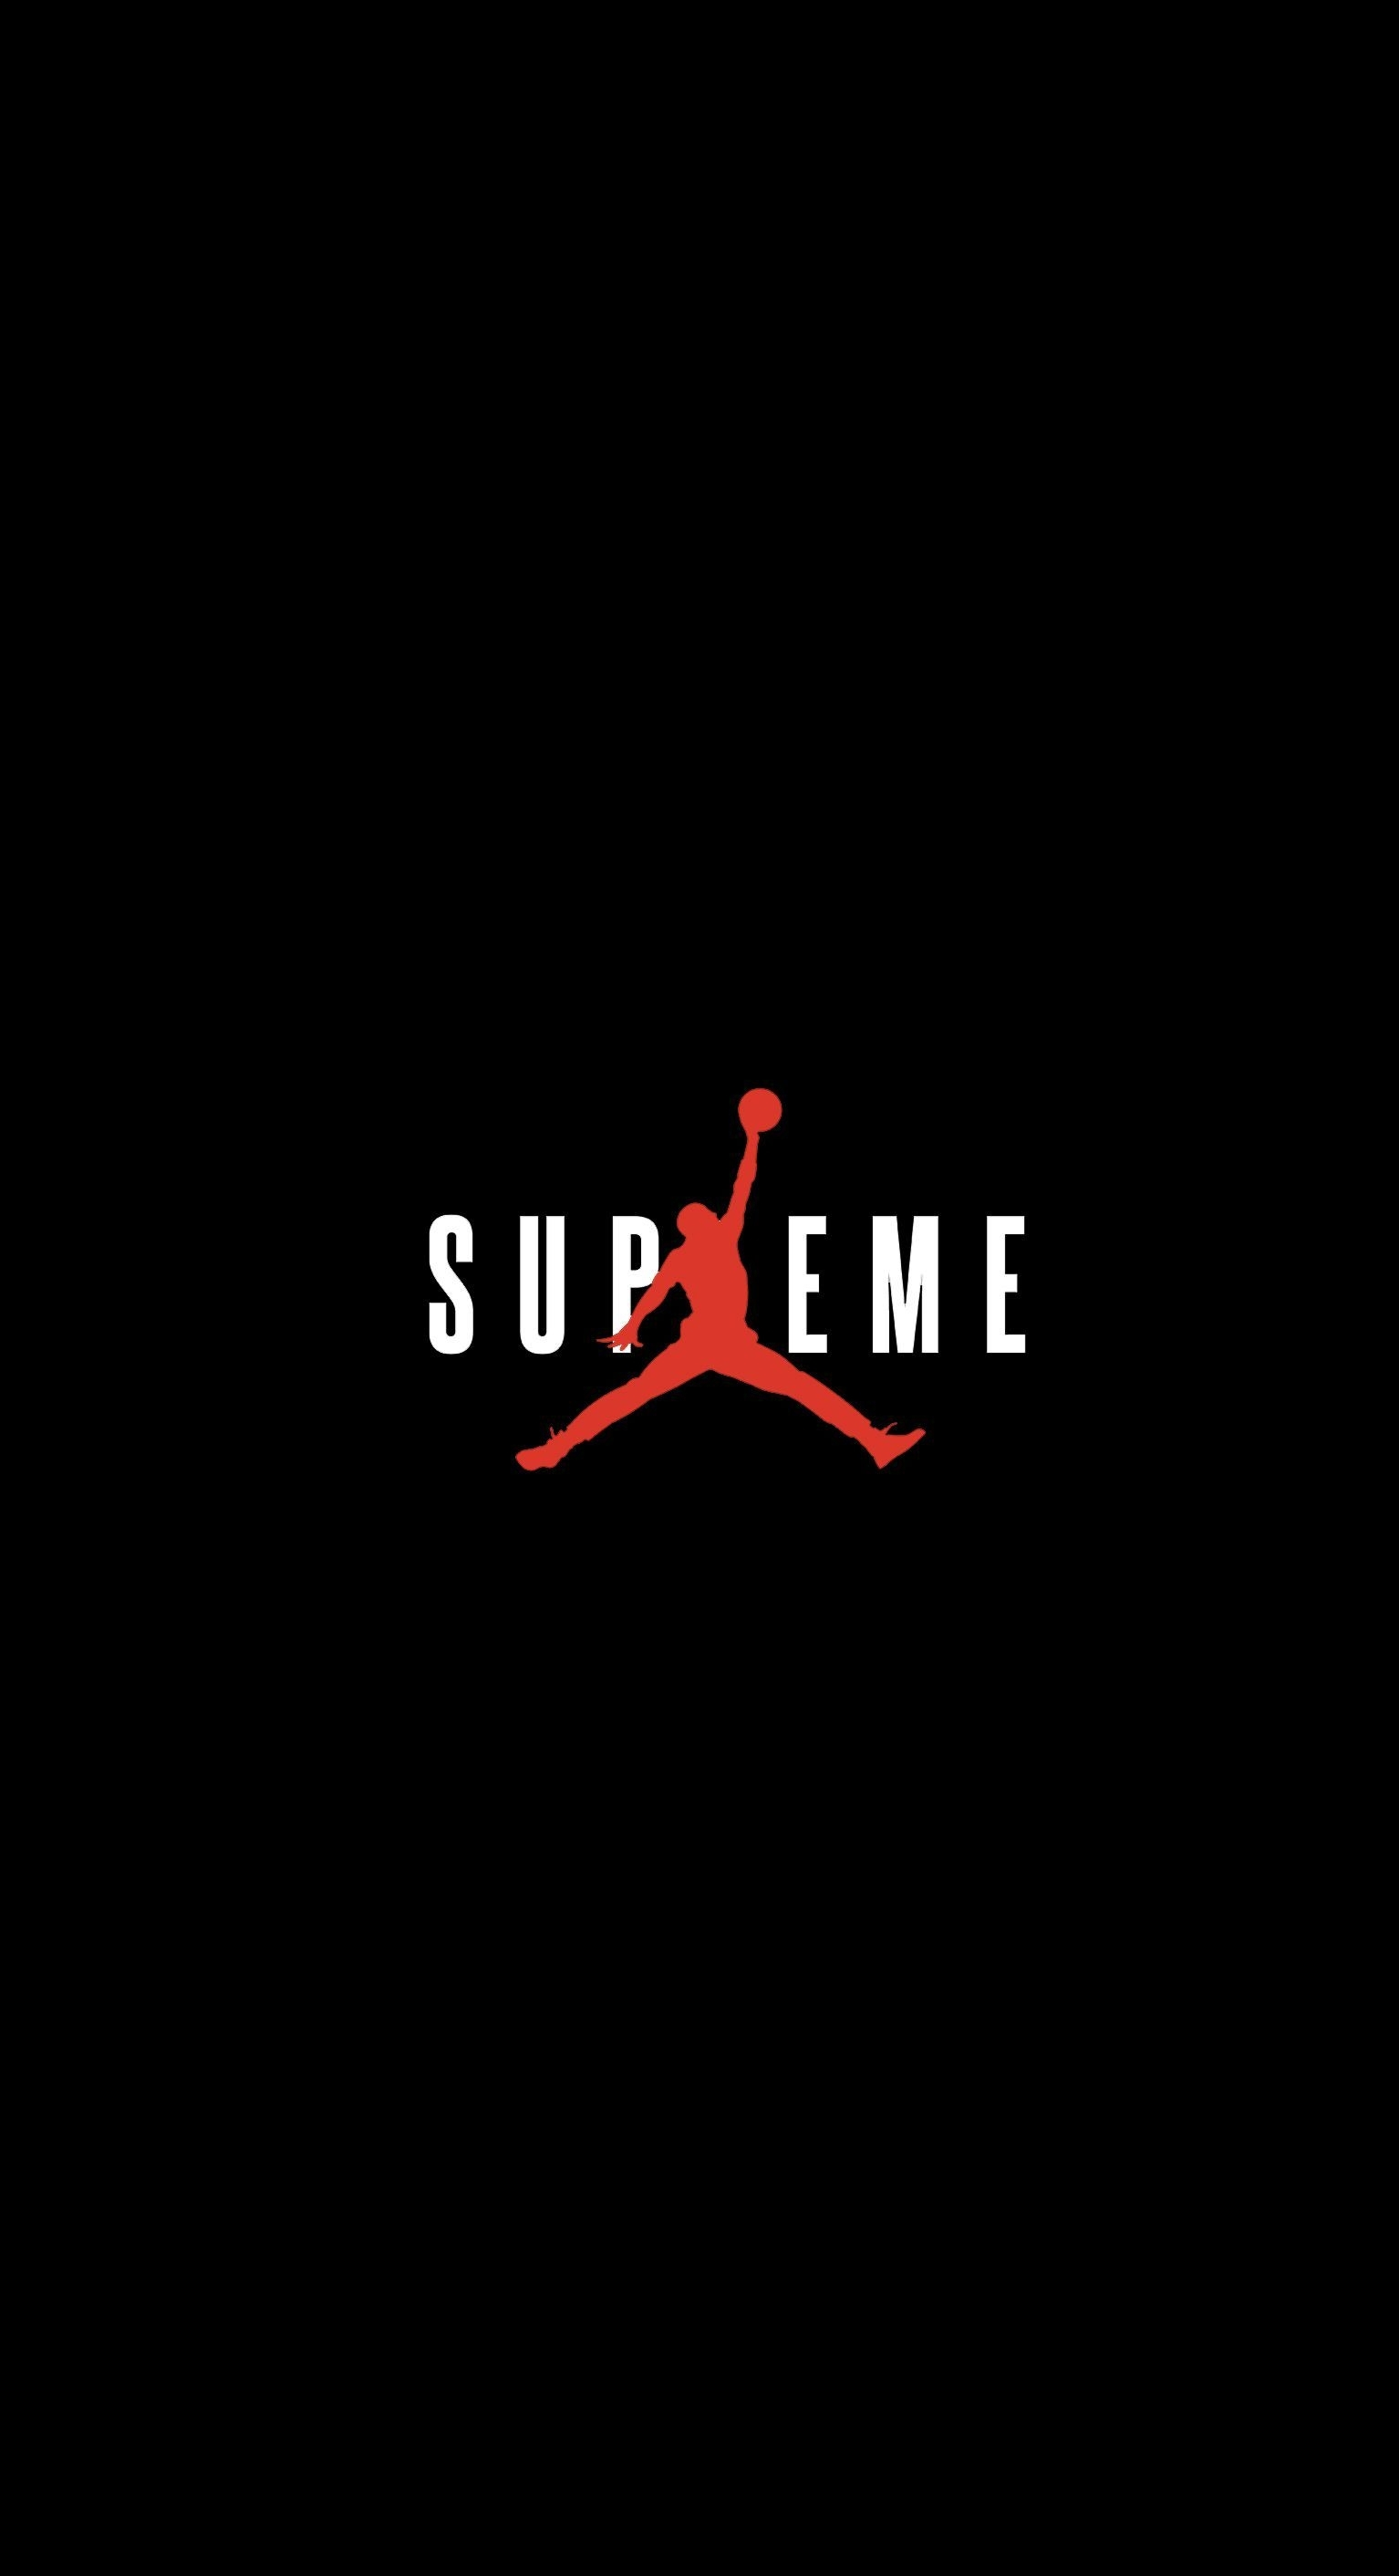 supreme x jordan wallpaper : streetwear - seré éter se wallpapers